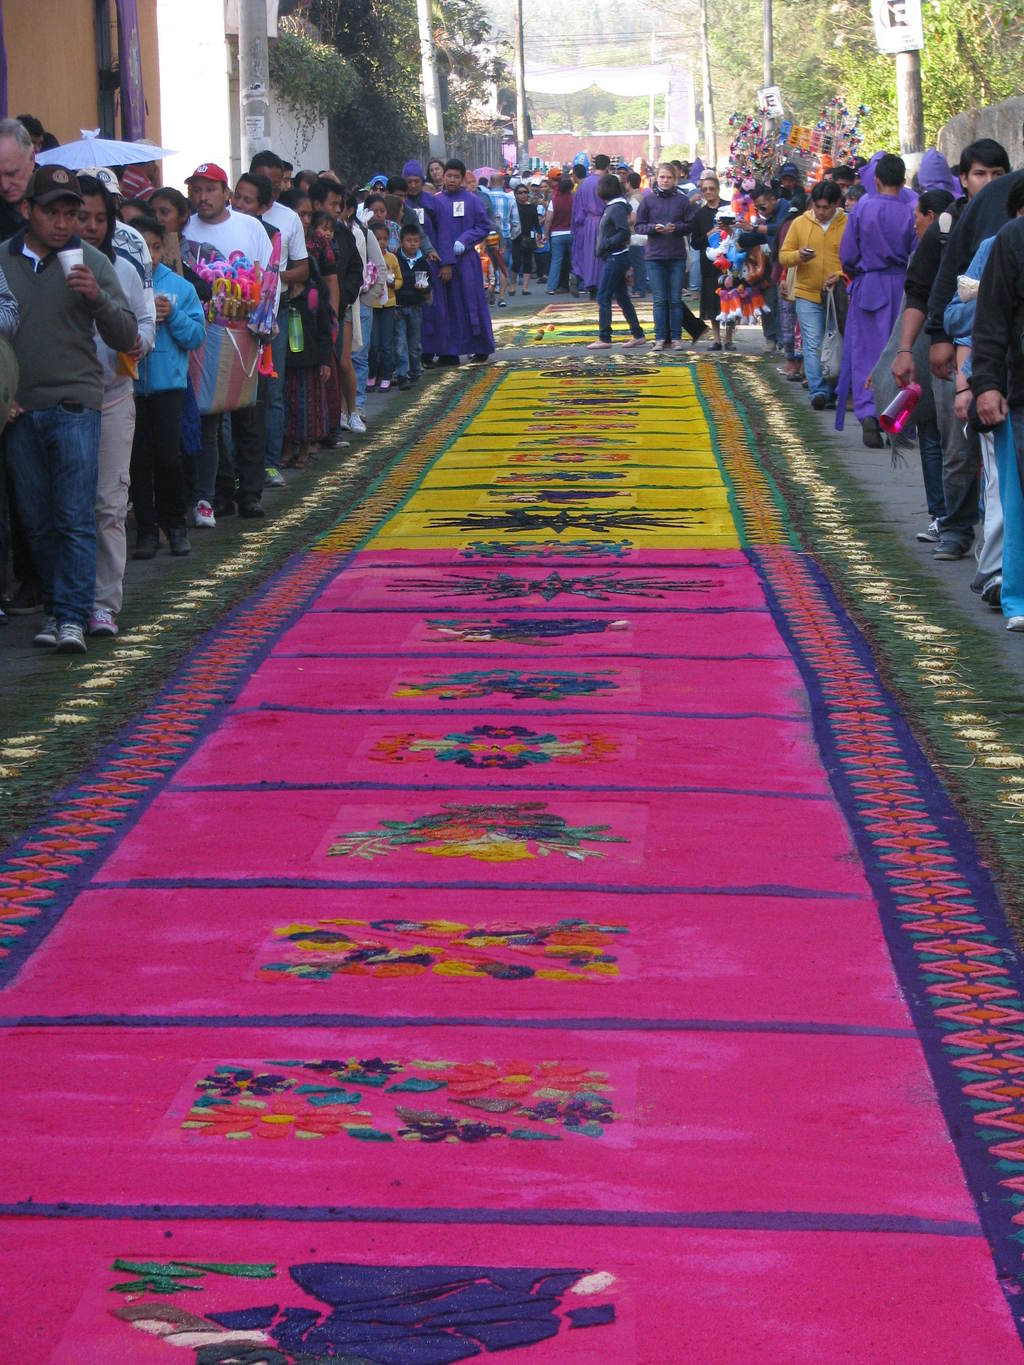 This March 22, 2015 photo shows a block-long, intricately designed carpet made of colored sawdust on a cobblestone street in Antigua, G...